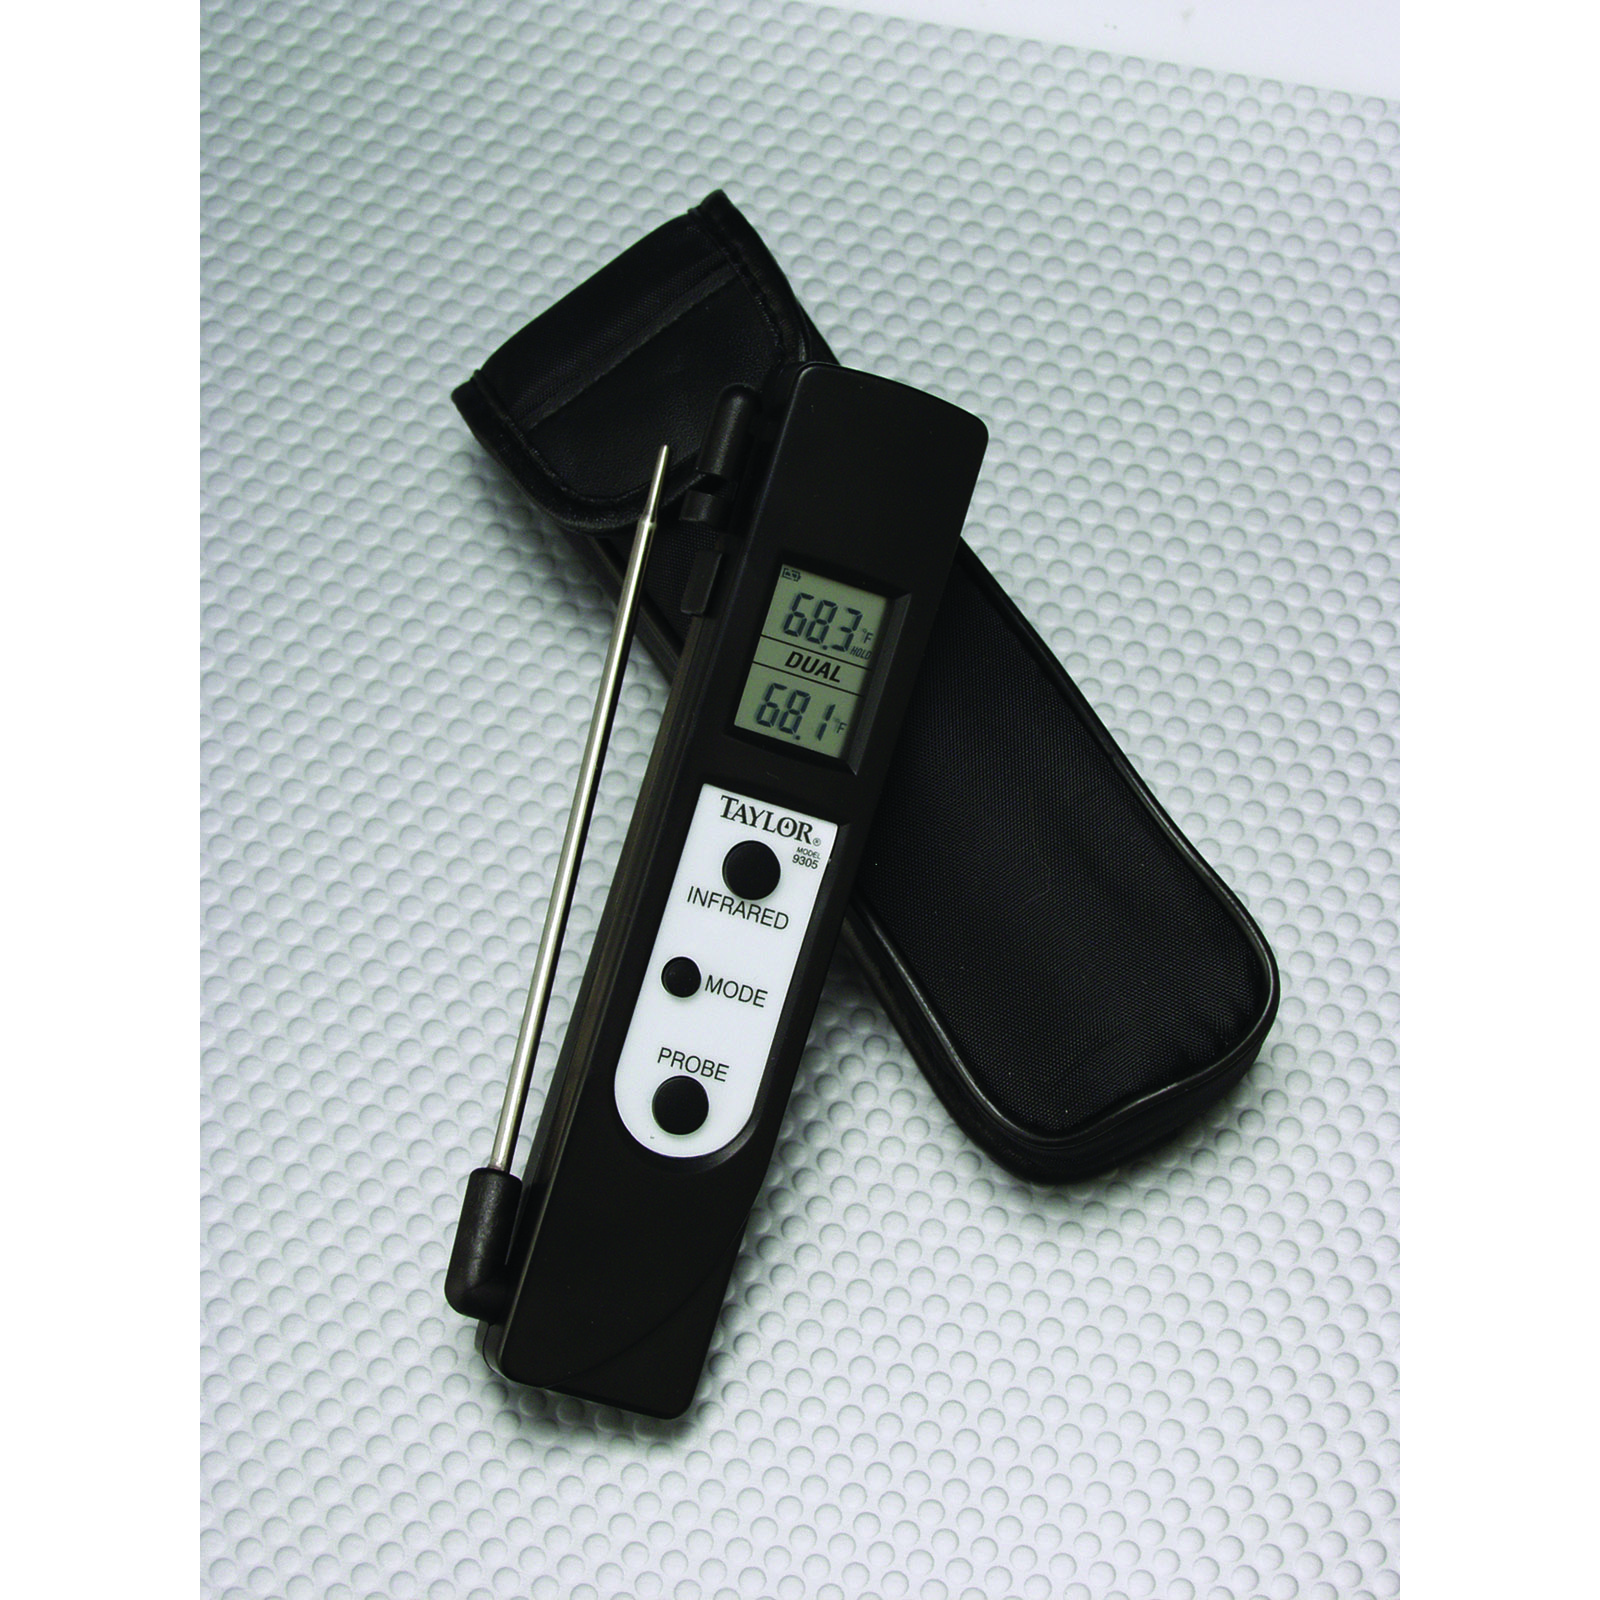 Taylor Precision 9305 thermometer, infrared